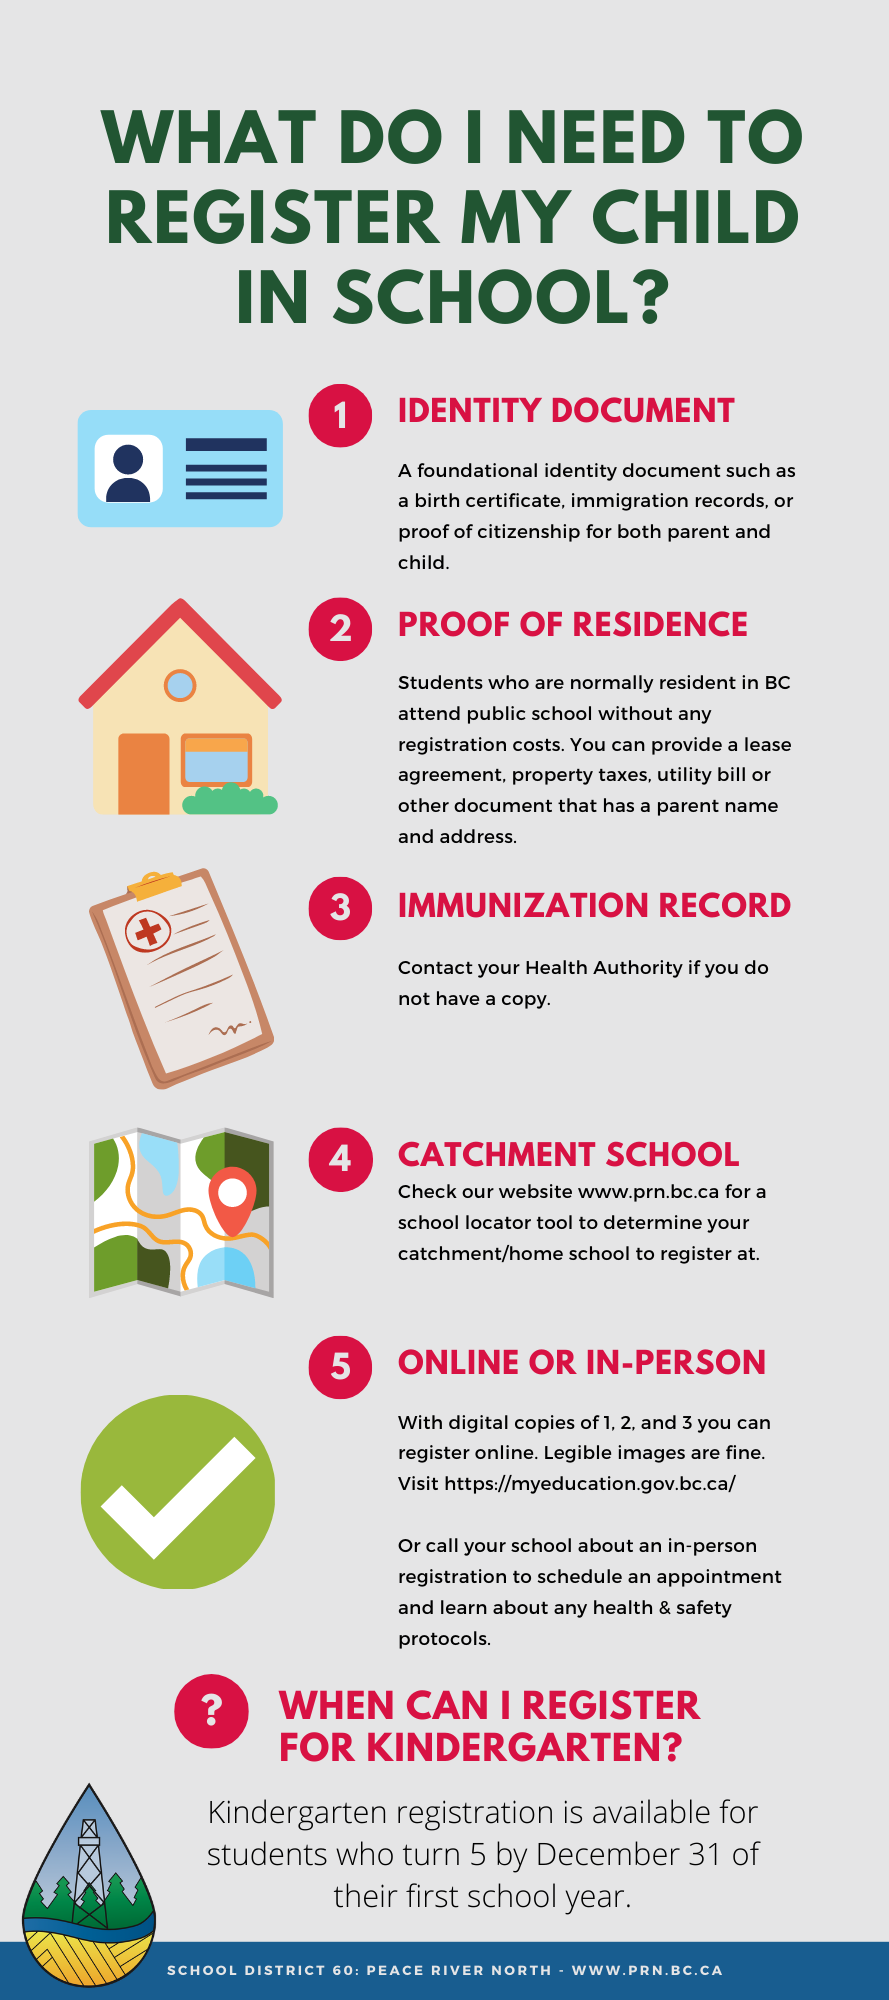 Infographic - what do I need to register my child for school - 1 identity document - 2 proof of residence - 3 immunization record - 4 determine your home school - 5 register online at myeducation.gov.bc.ca or call your school about in-person registration.